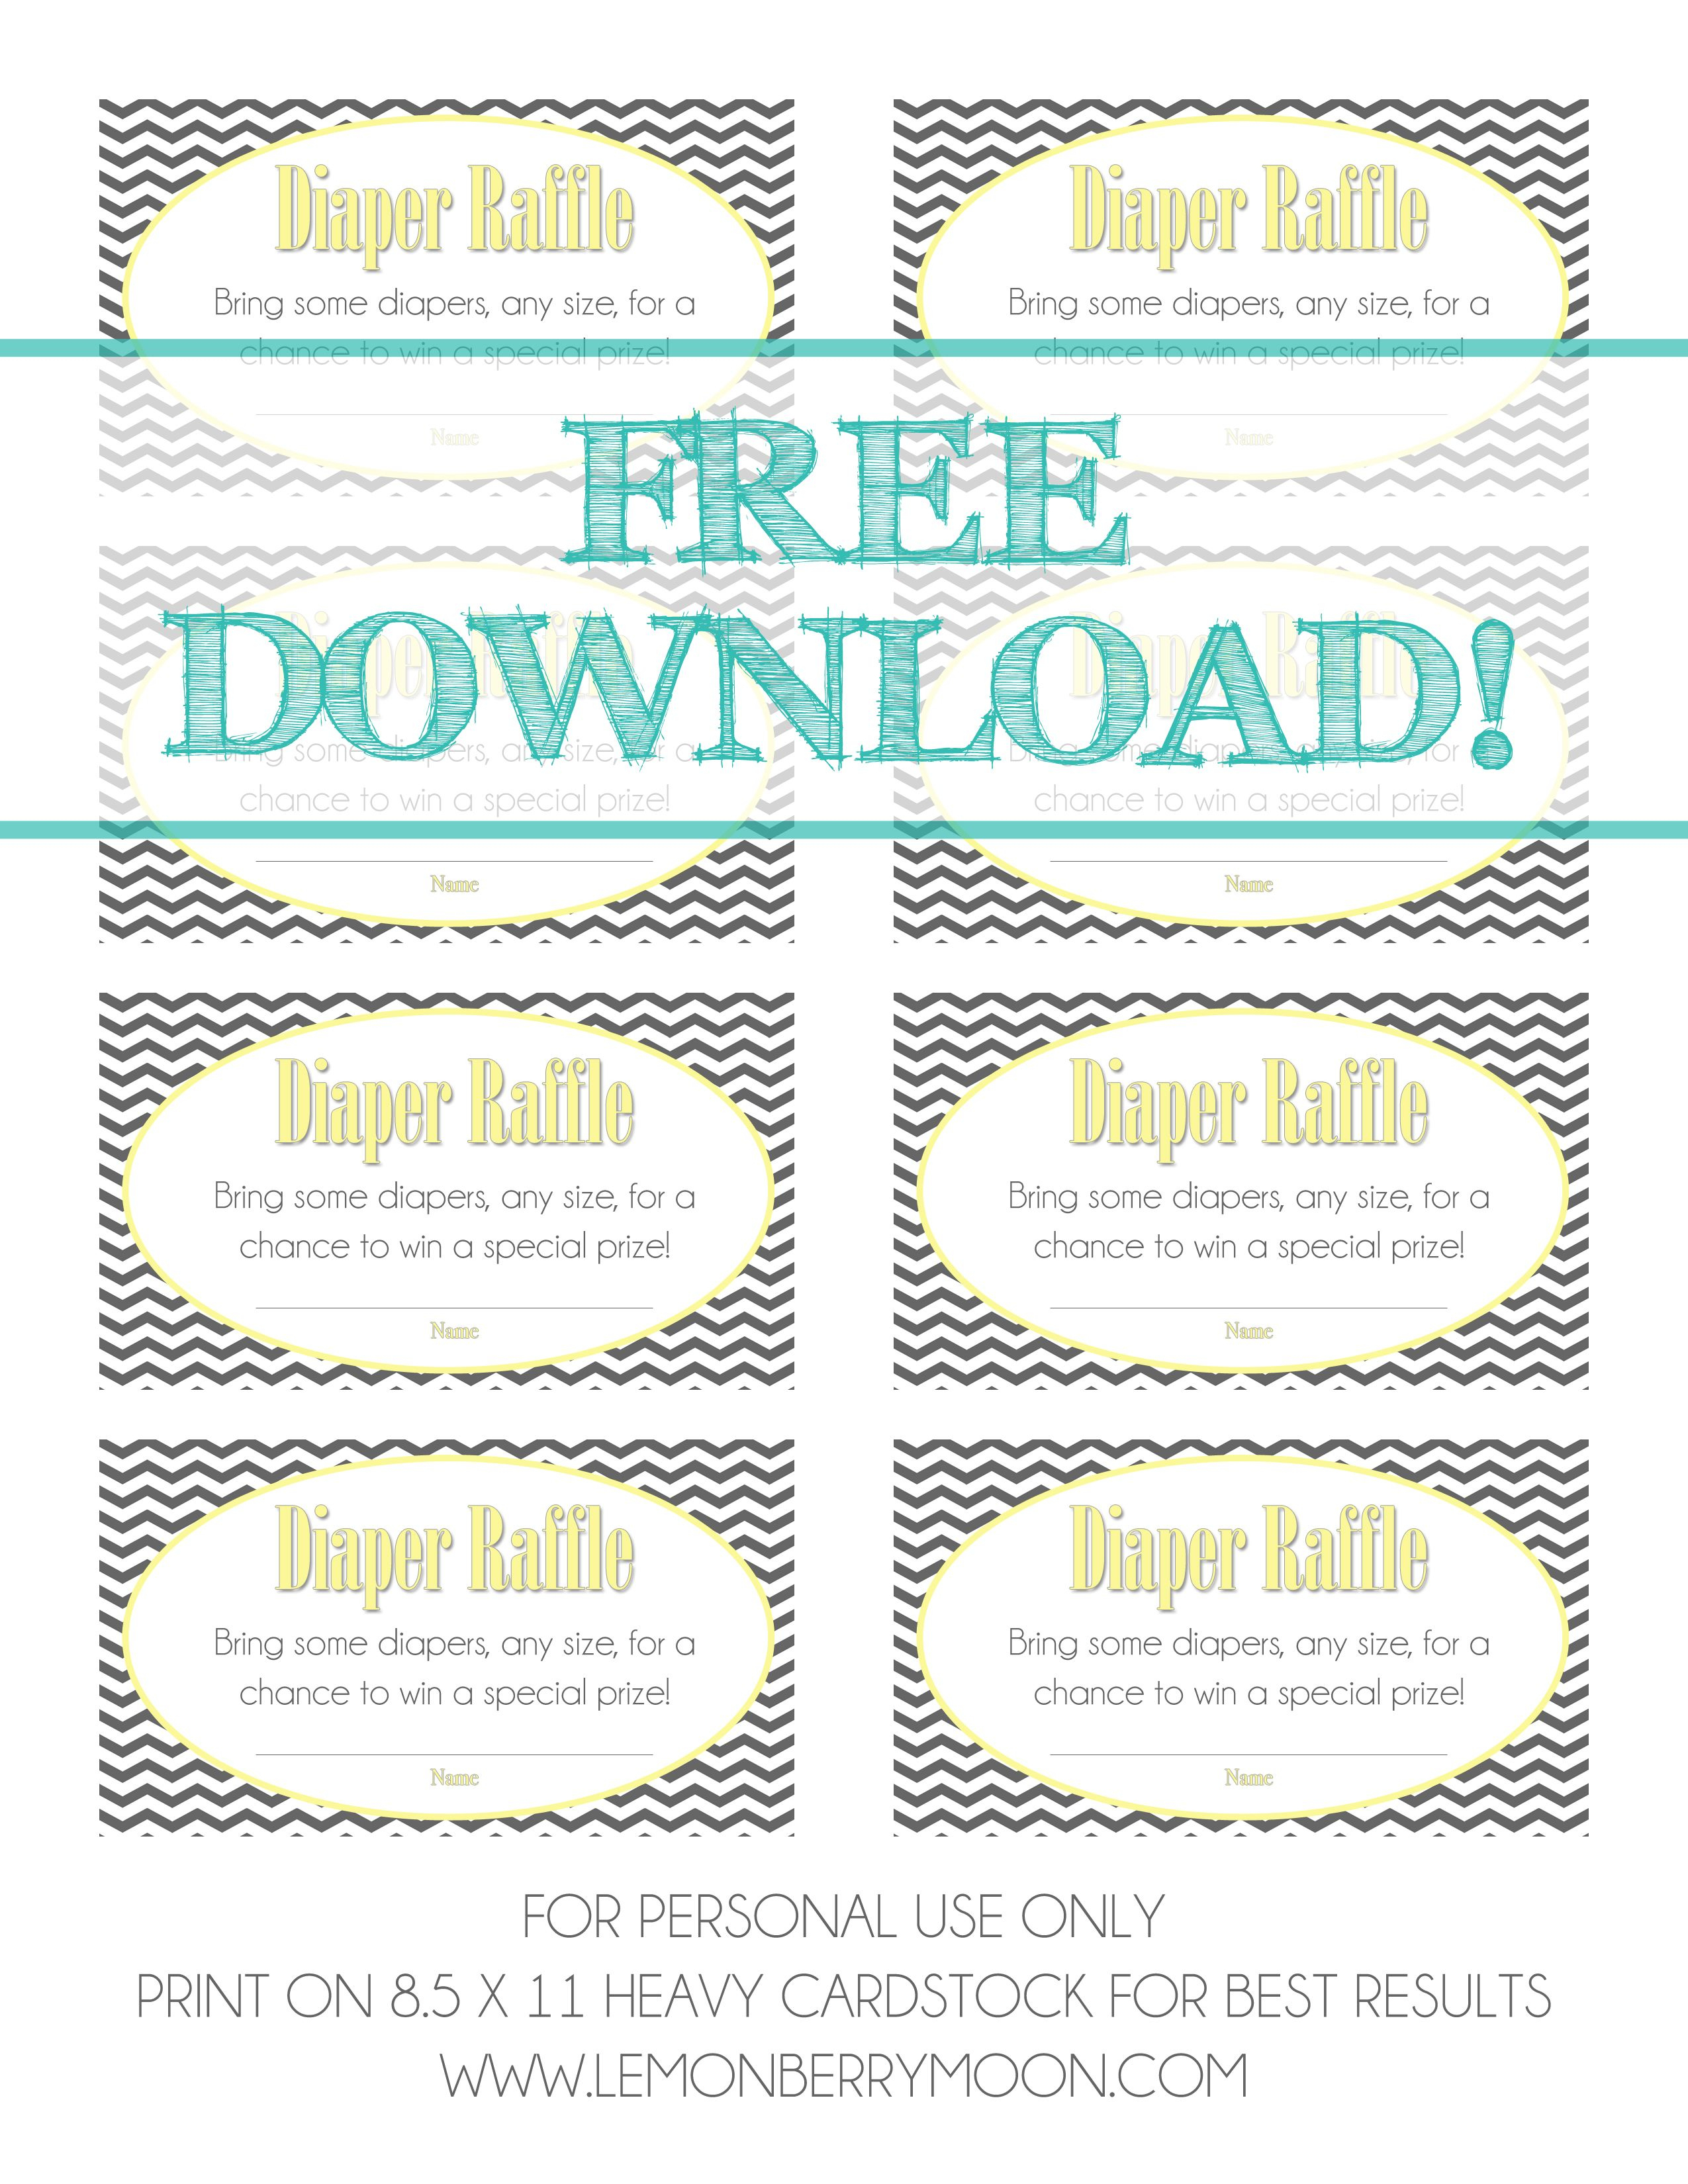 Free Download - Baby Diaper Raffle Template | Baaby Shower | Baby - Diaper Raffle Free Printable